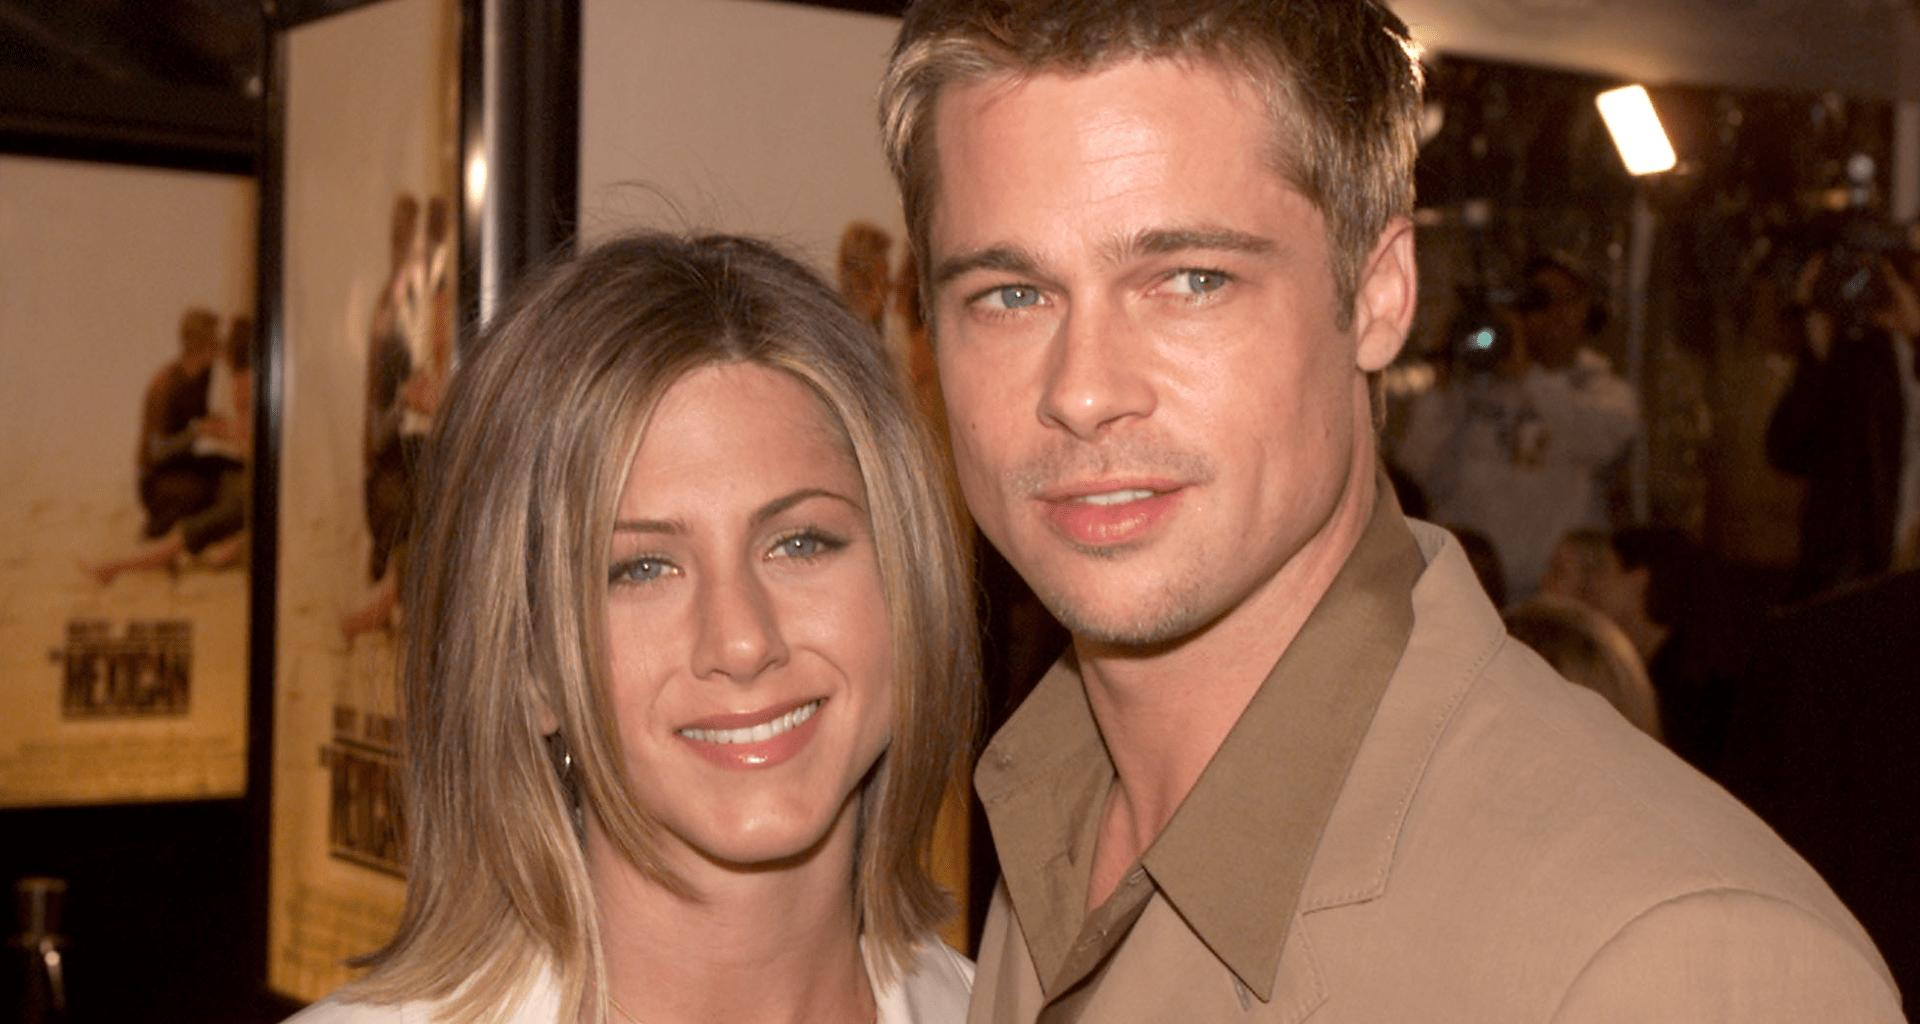 Wendy Williams Wants Brad Pitt And Jennifer Aniston To Get Back Together After They Reunite At Her Christmas Party!